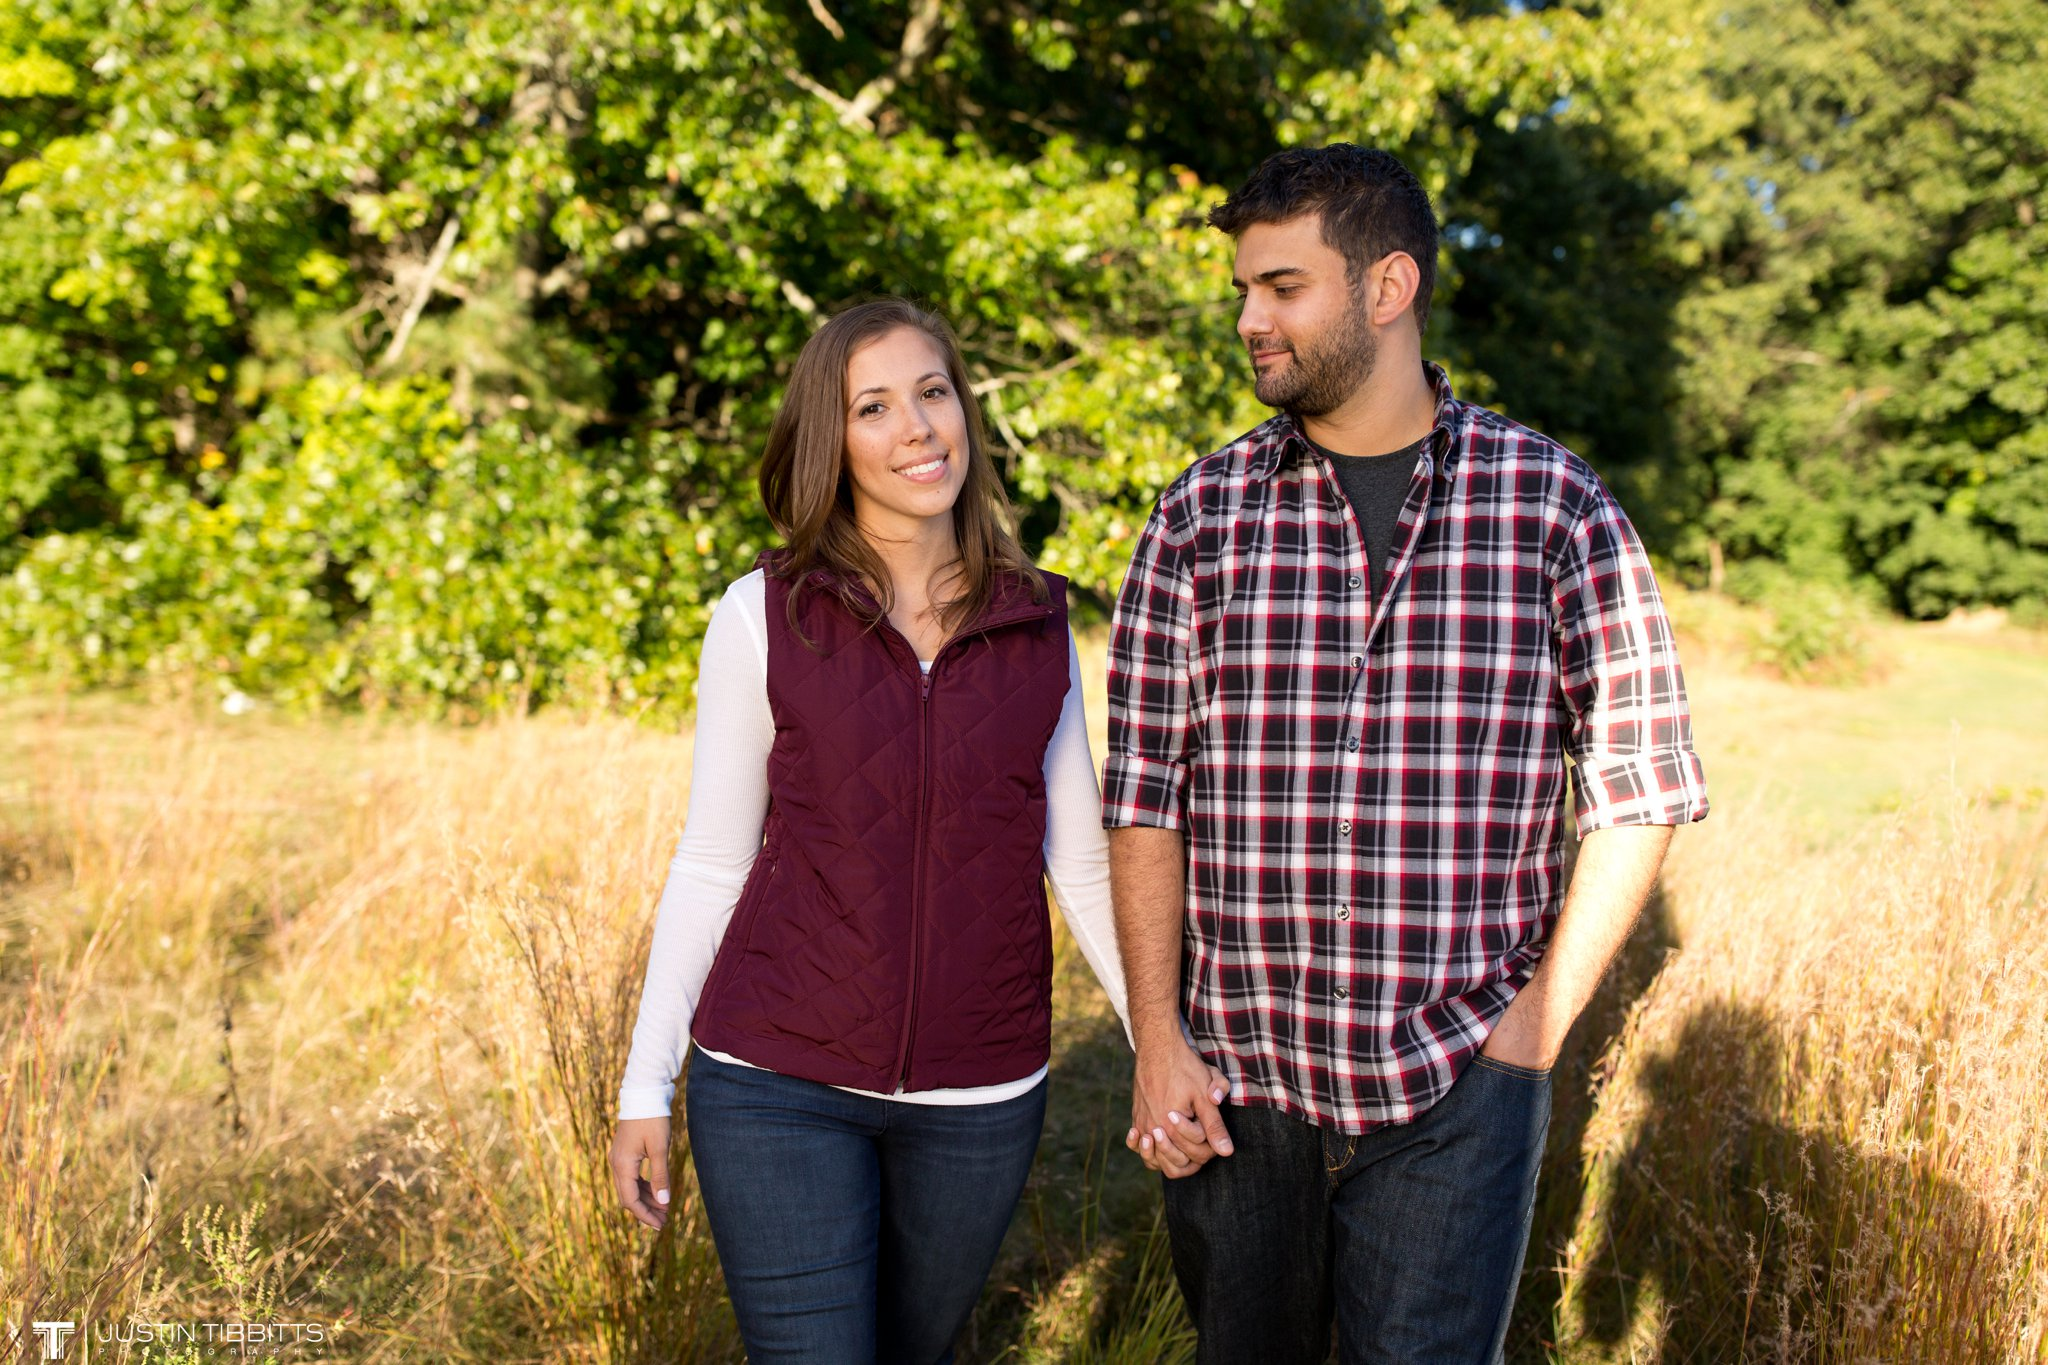 saratoga-springs-ny-engagement-shoot-with-nick-and-ciara_0022